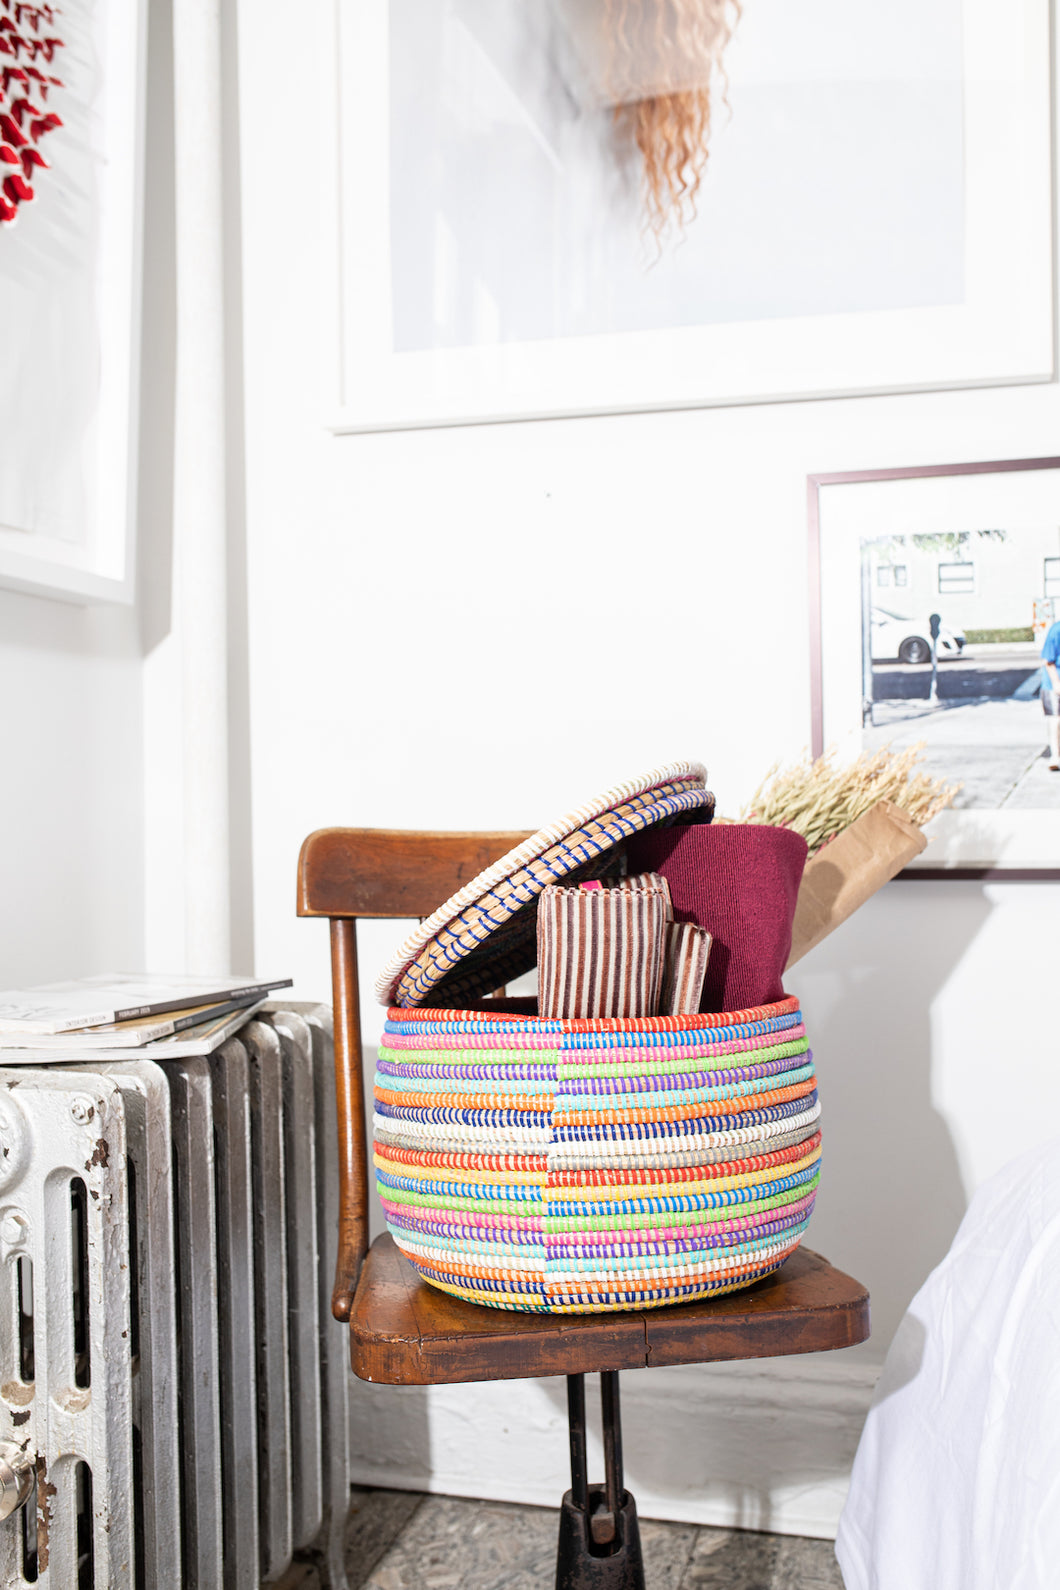 Rainbow striped lidded warming basket. They can be used for storing knicks knacks, decor for a shelving or even keeping baked goods warm.